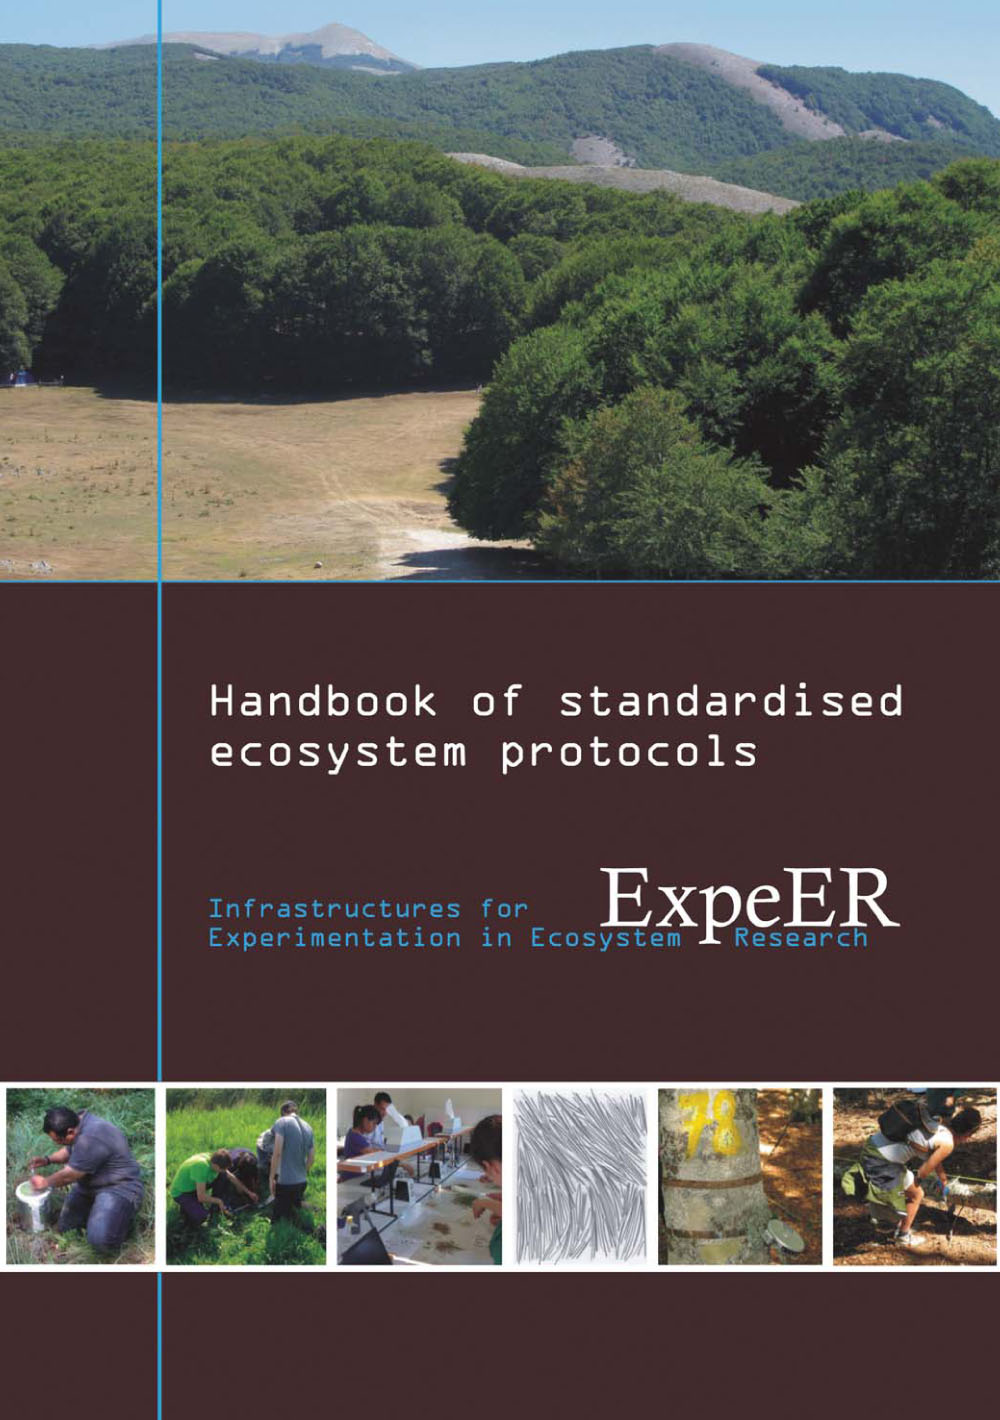 Handbook of standardized ecosystem protocols